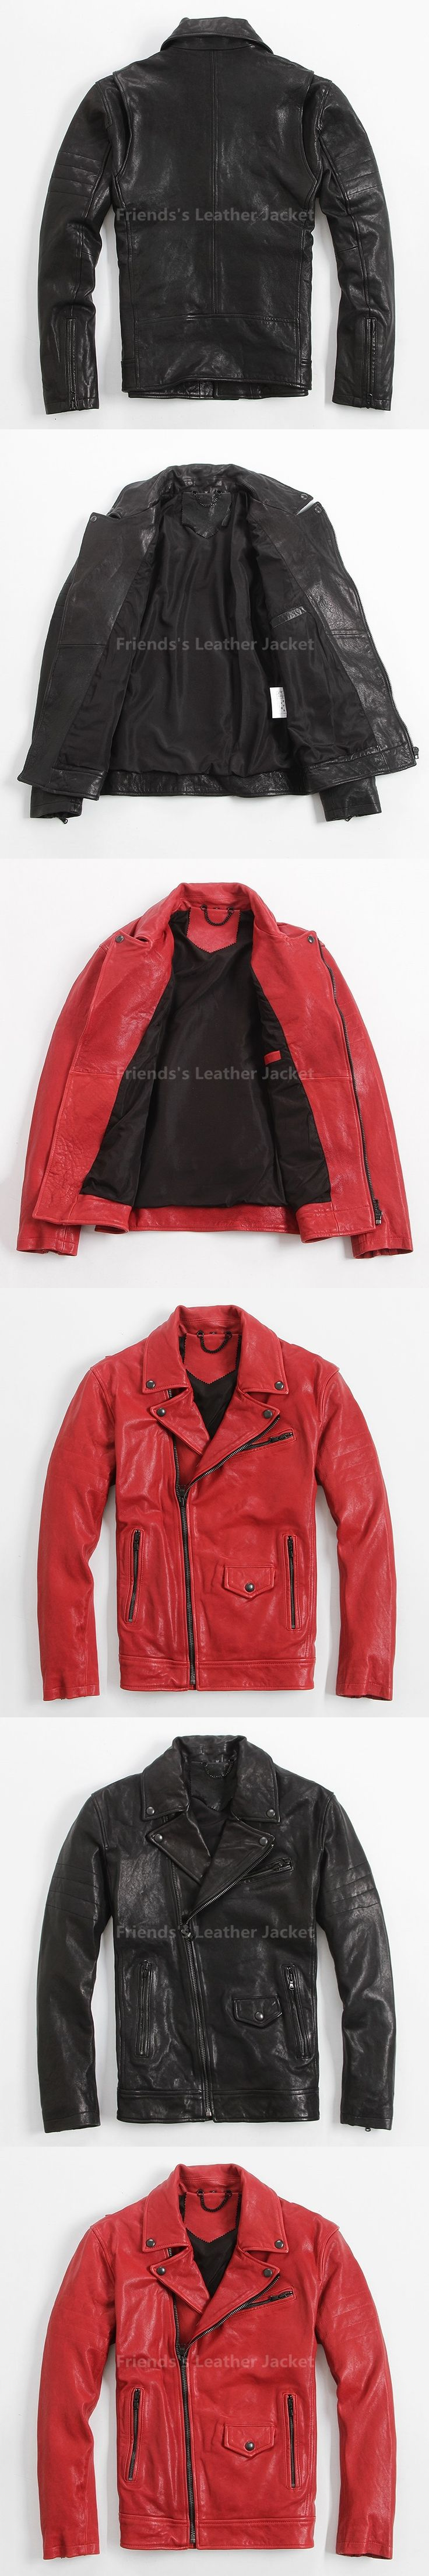 2018 Red Men Motorcycle Leather Jacket Diagonal Zipper Plus Size XXXL Slim Fit Short Winter Biker Leather Coat FREE SHIPPING